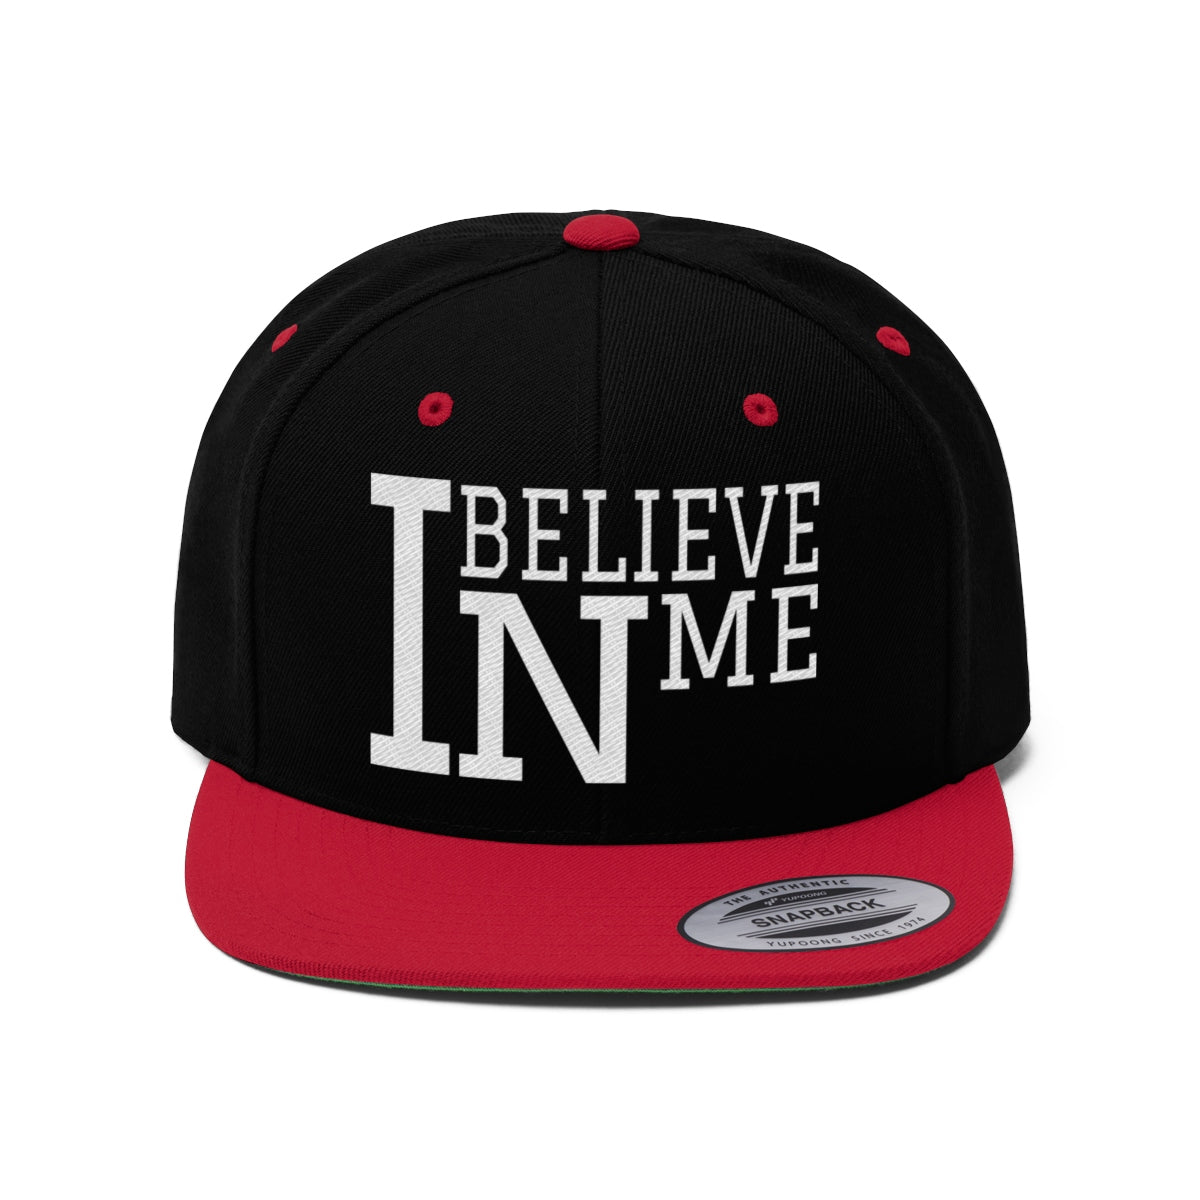 """I Believe In Me"" Unisex Flat Bill Hat"